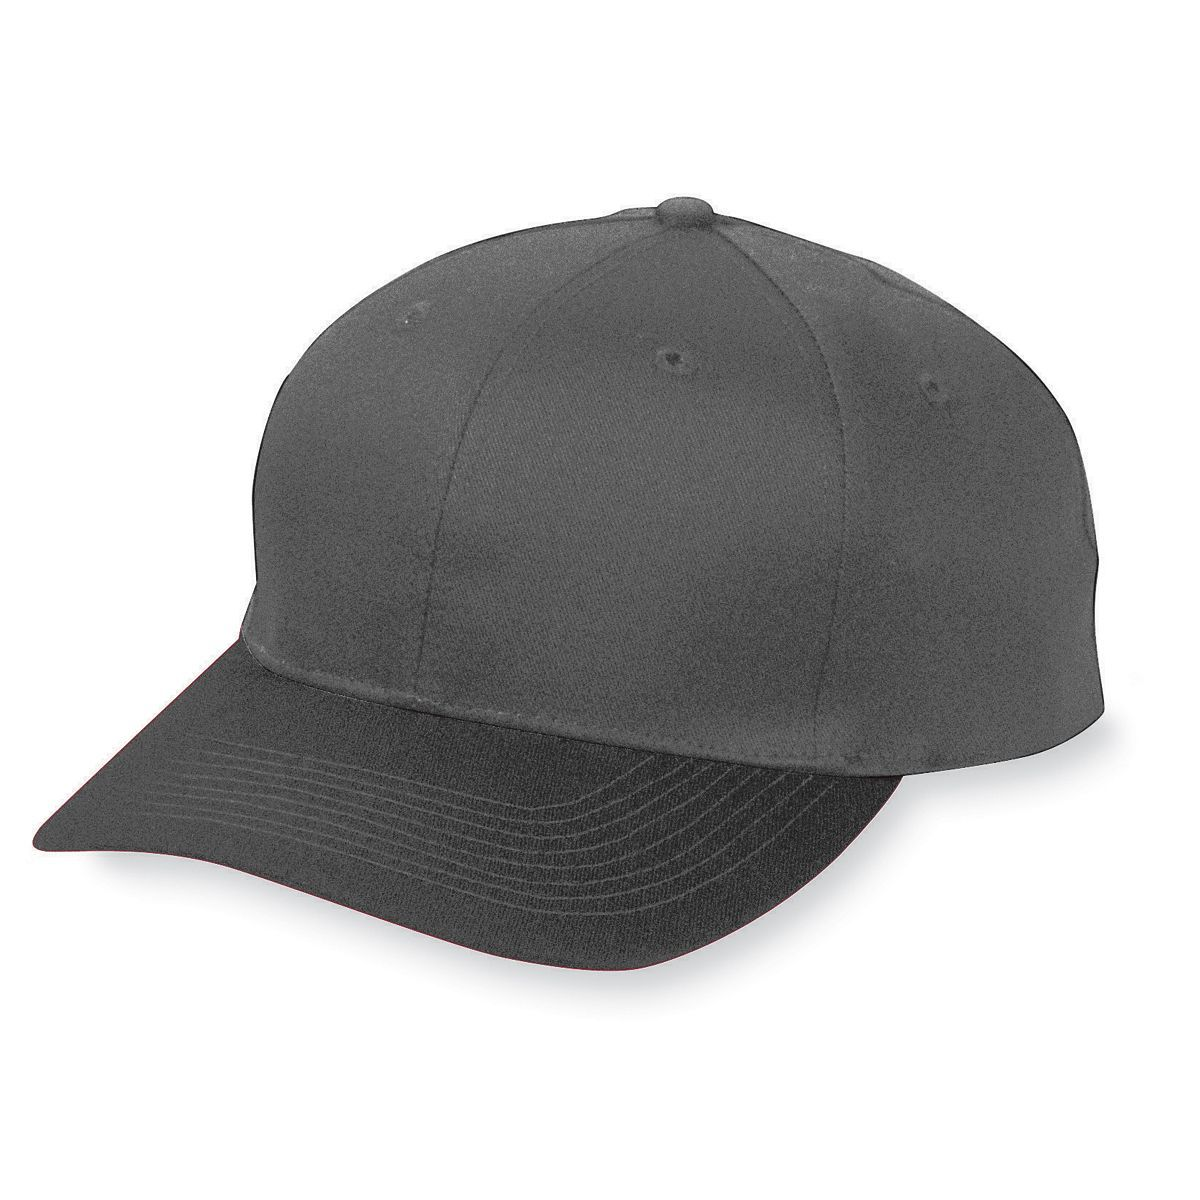 Six-Panel Cotton Twill Low-Profile Cap - BLACK